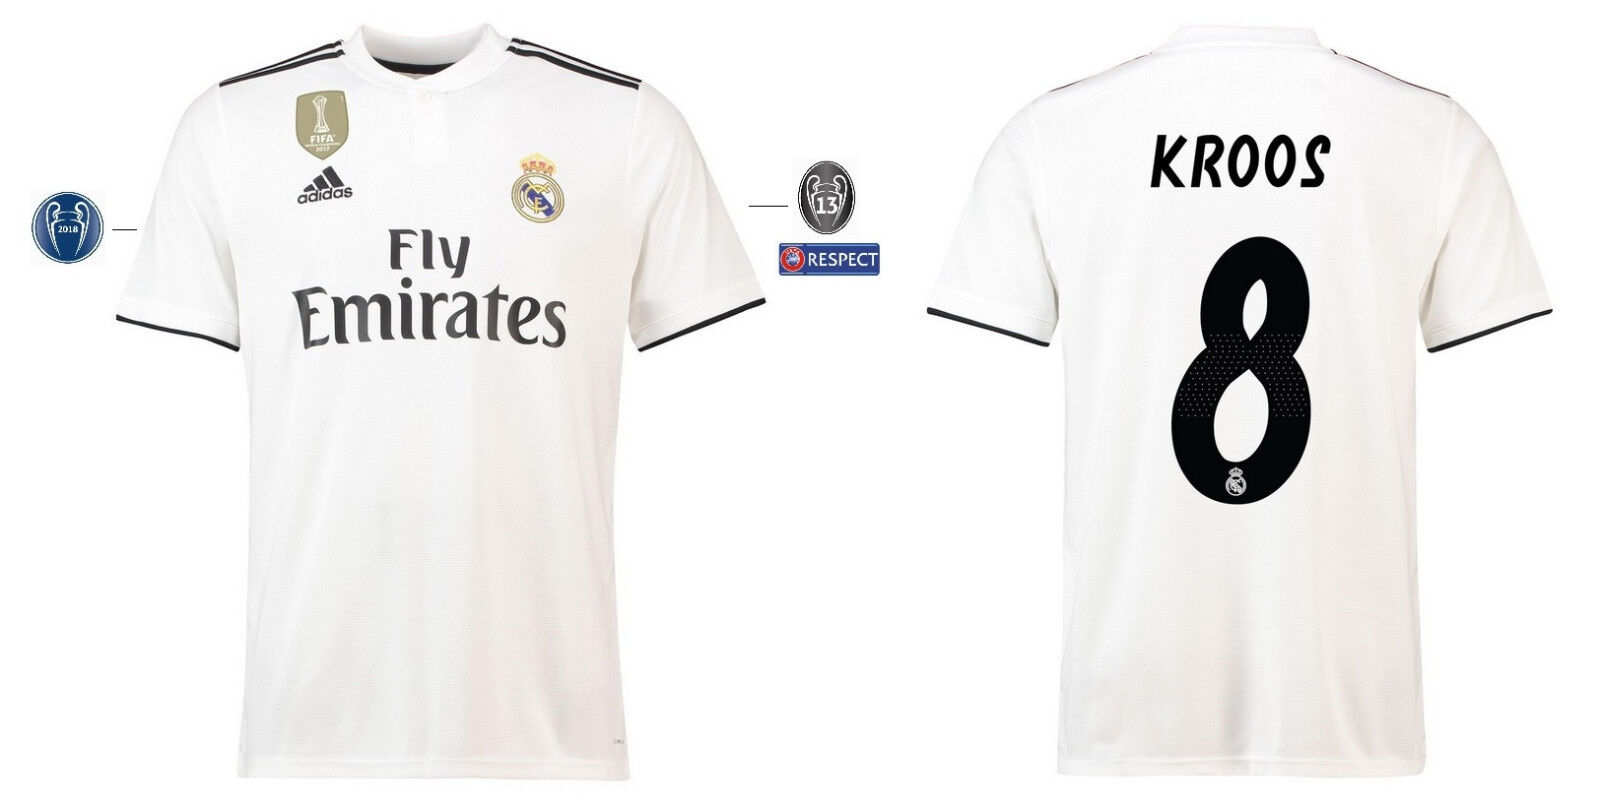 Trikot Adidas Real Madrid 2018-2019 Home UCL - Kroos  Champions League